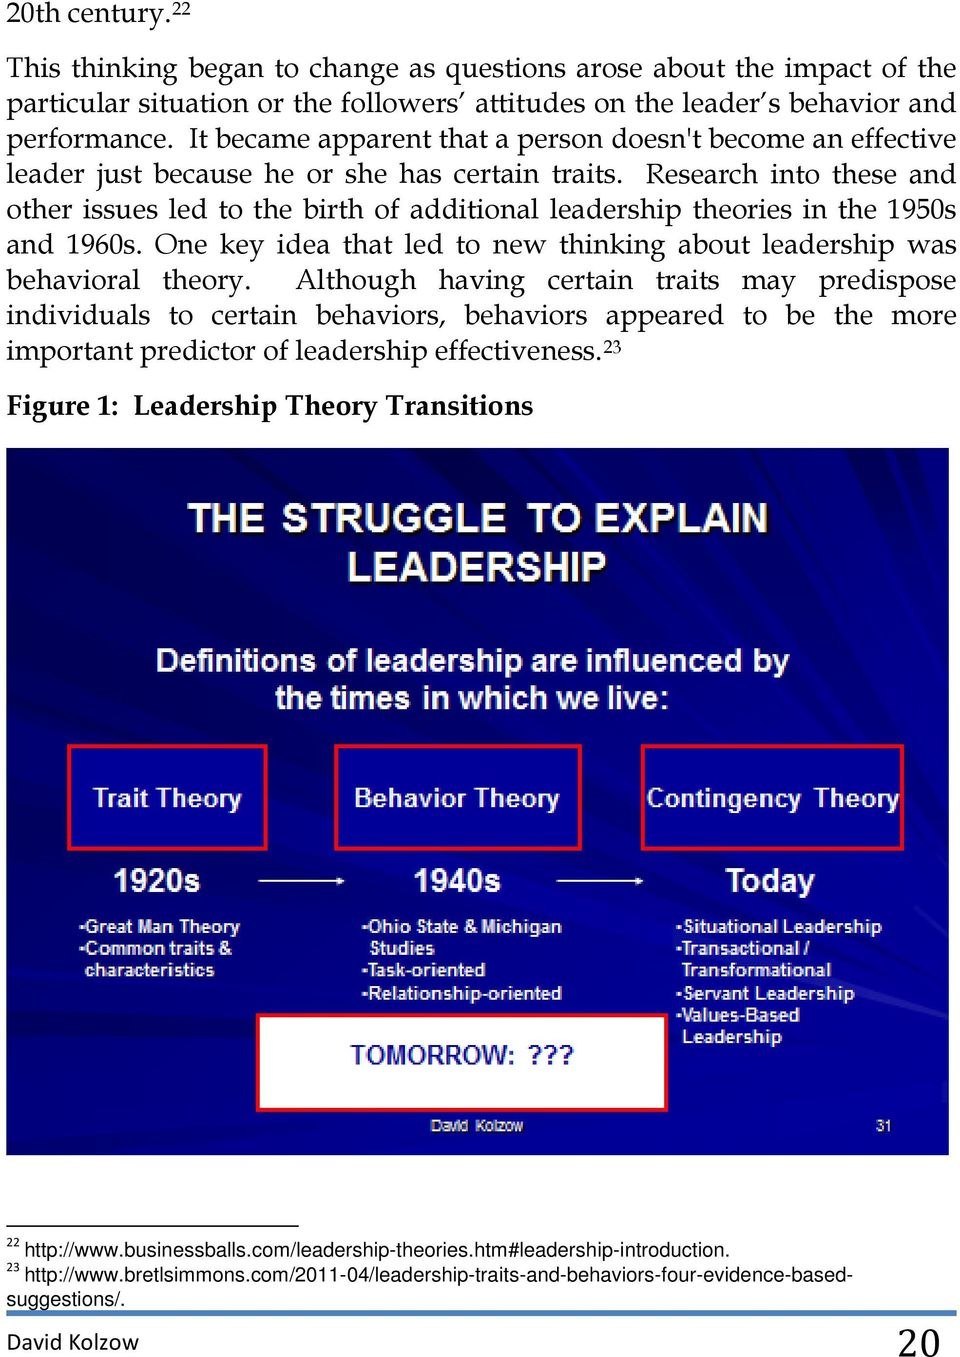 Research into these and other issues led to the birth of additional leadership theories in the 1950s and 1960s. One key idea that led to new thinking about leadership was behavioral theory.